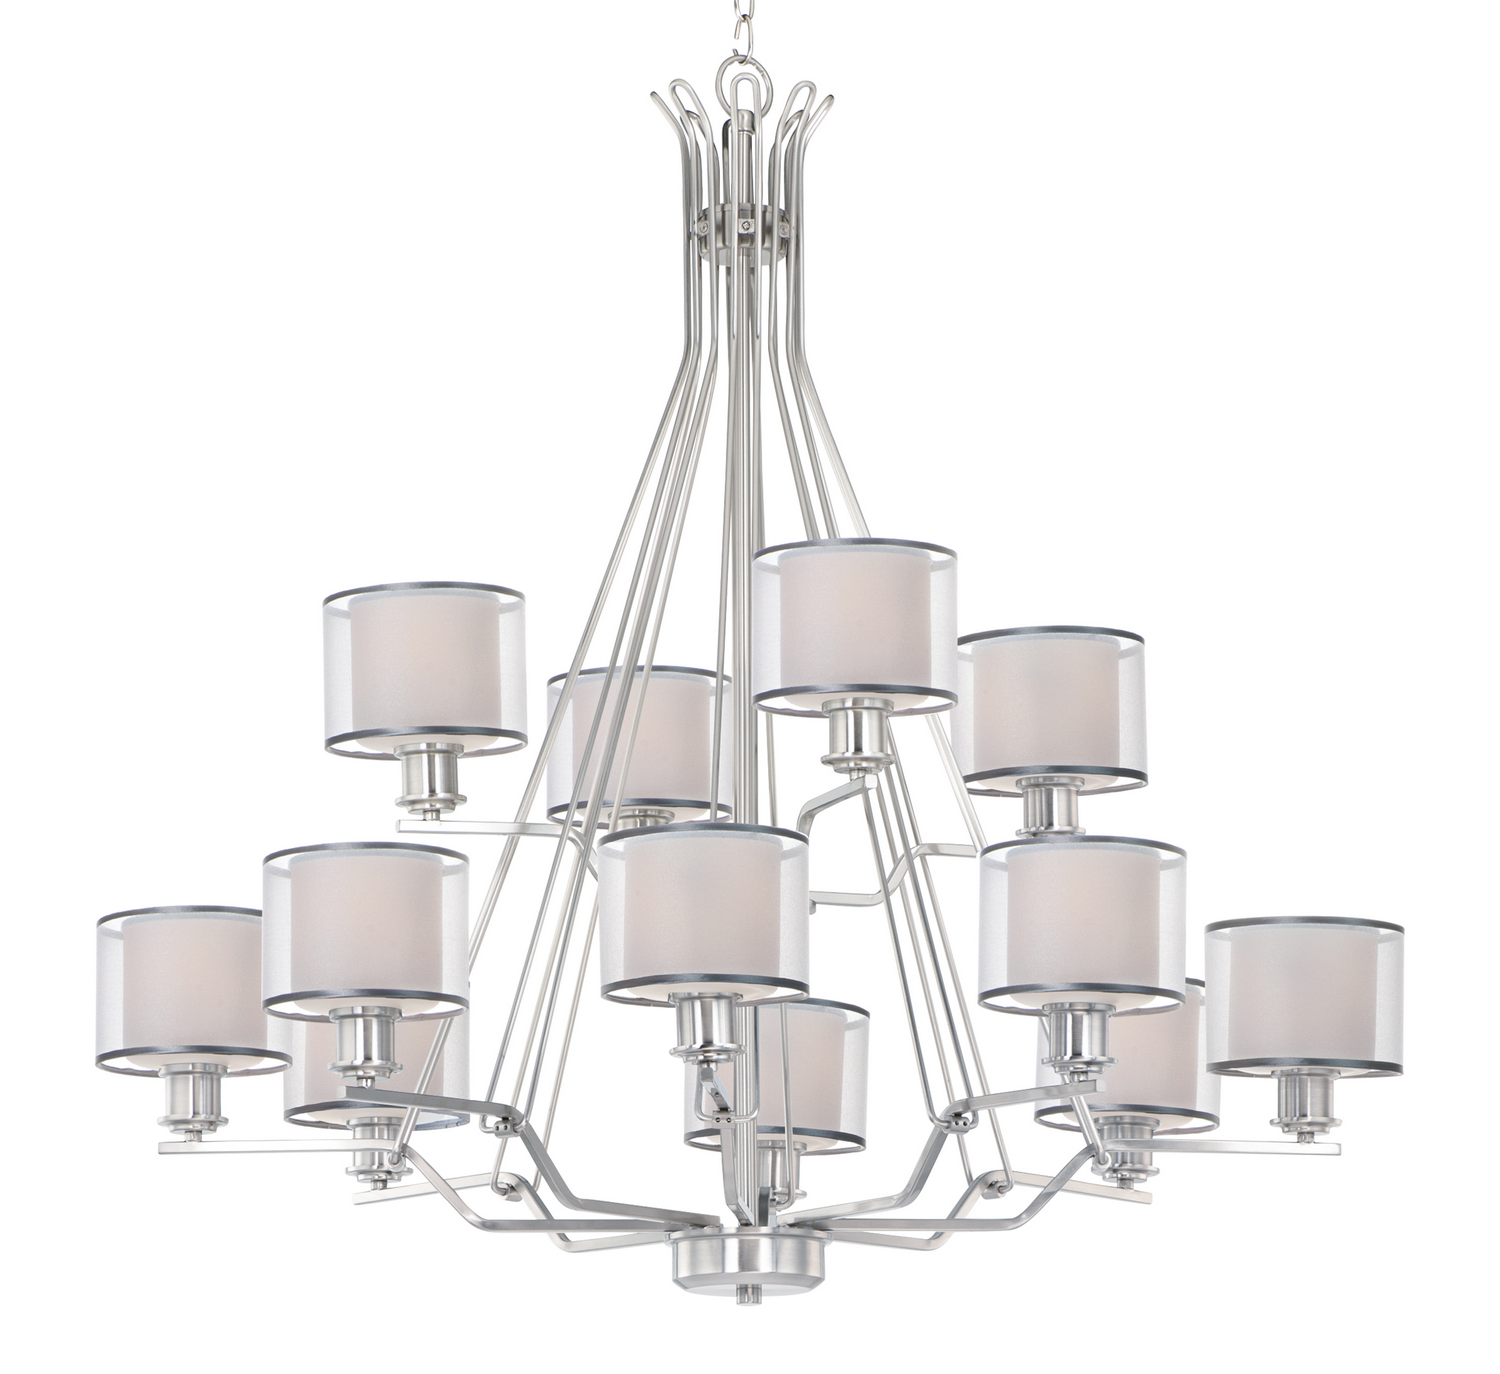 12 Light Chandelier from the Bon Ton collection by Maxim 26048SWWOSN